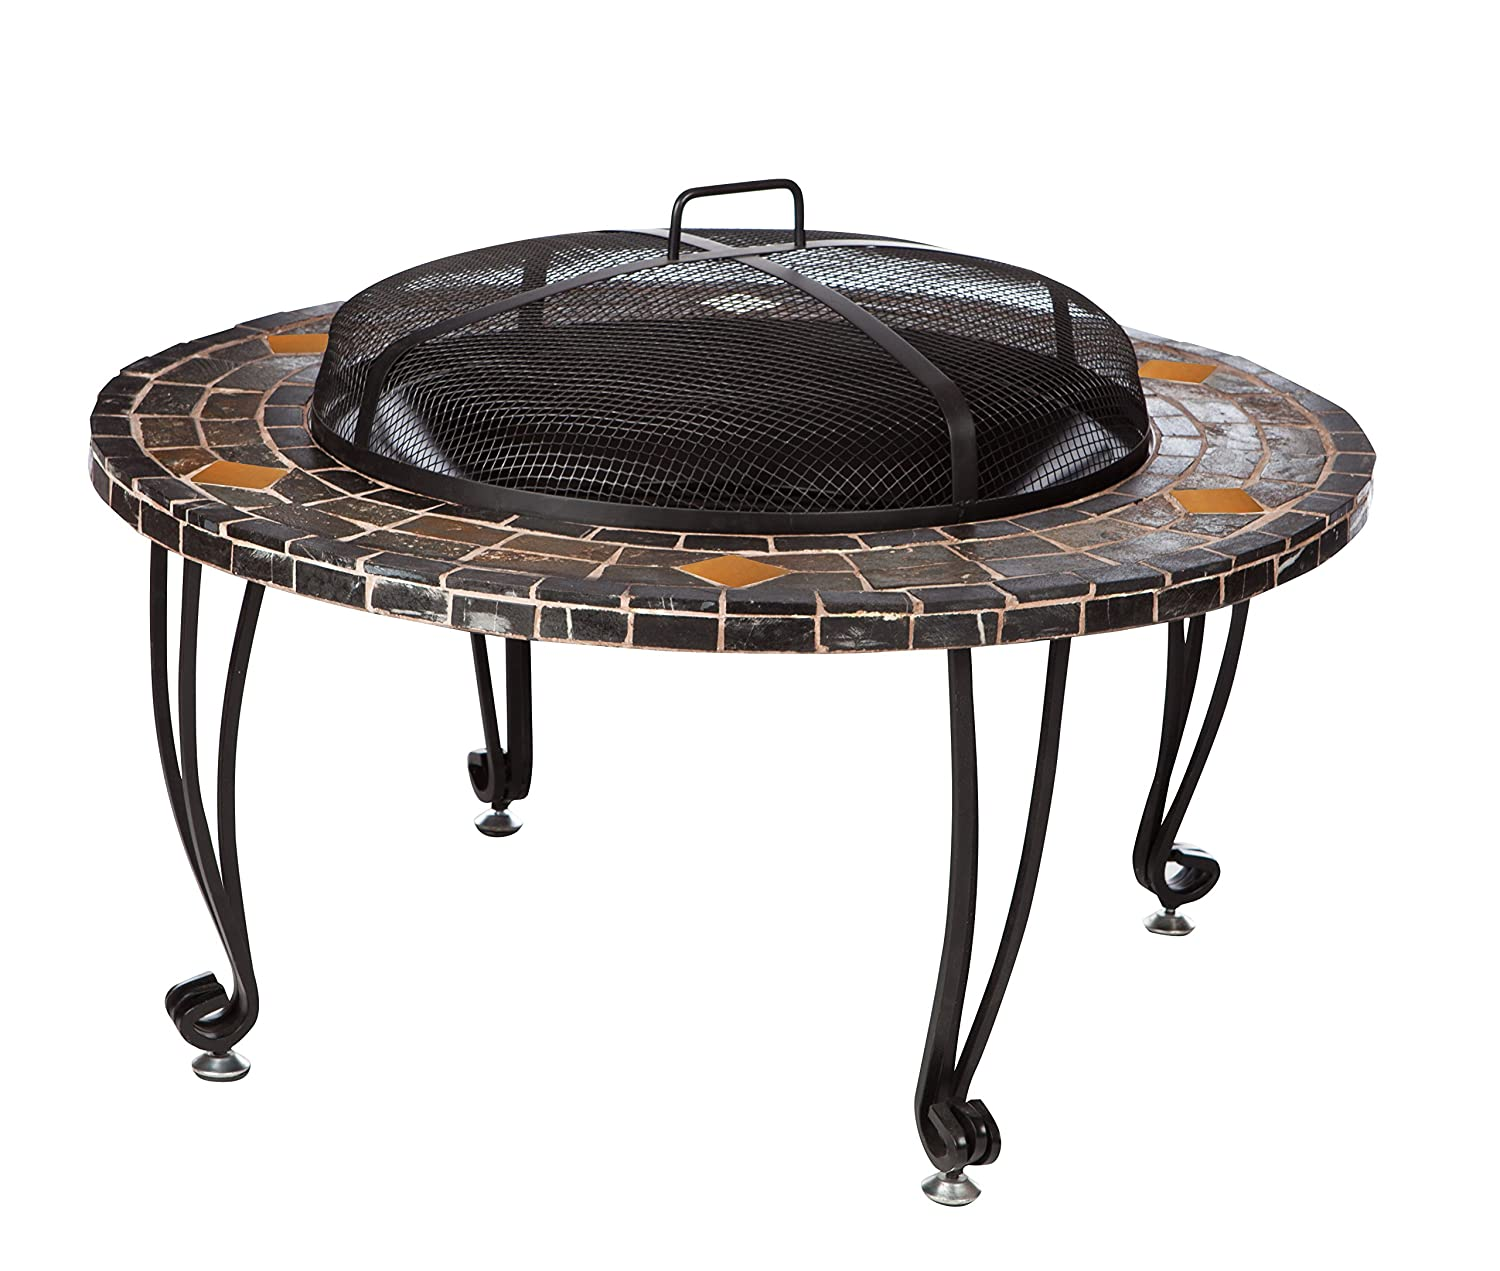 AmazonBasics Natural Stone Fire Pit with Copper Accents - 34-Inch